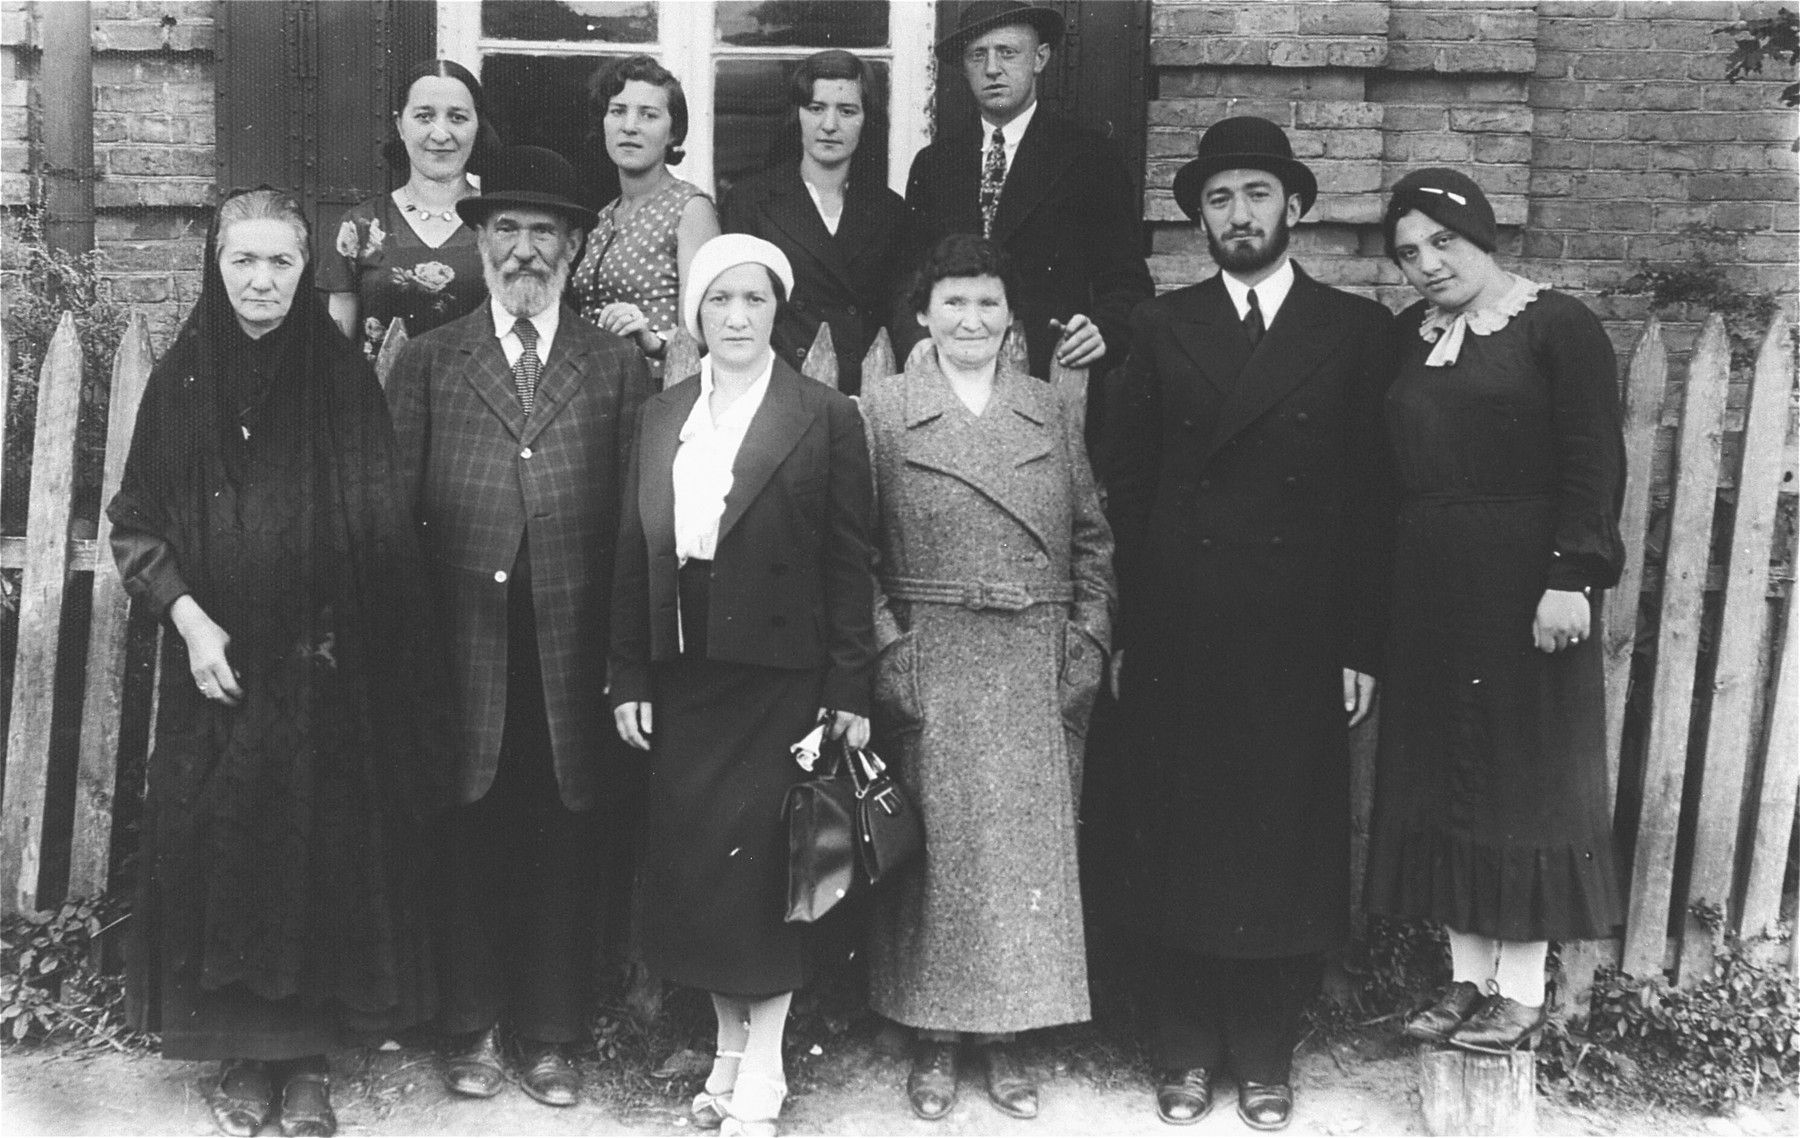 Group portrait of a religious Jewish family in front of their home in Kron?, Lithuania.